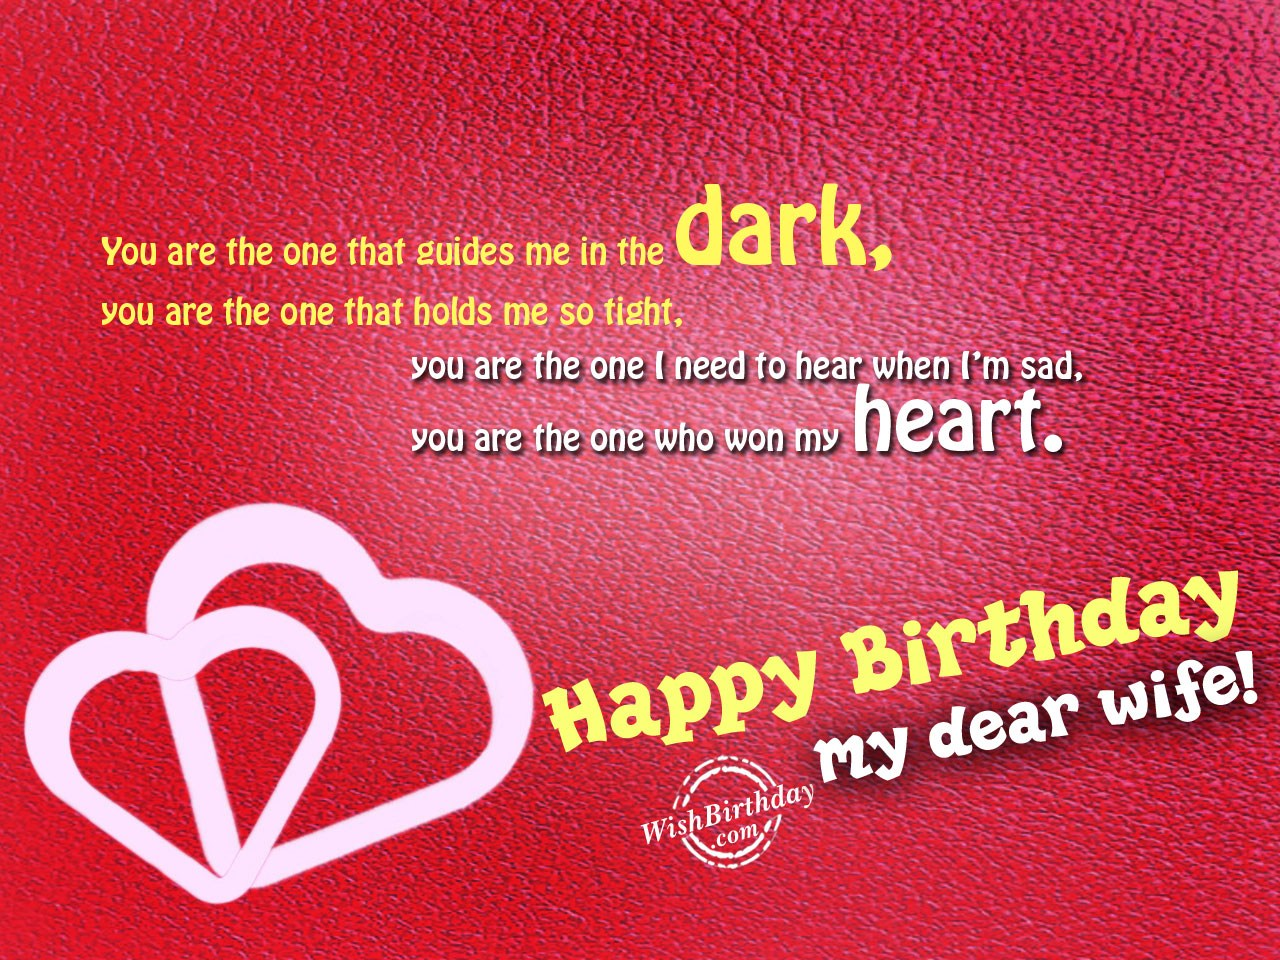 Birthday Wishes For Wife Birthday Images Pictures – Happy Birthday Cards for My Wife